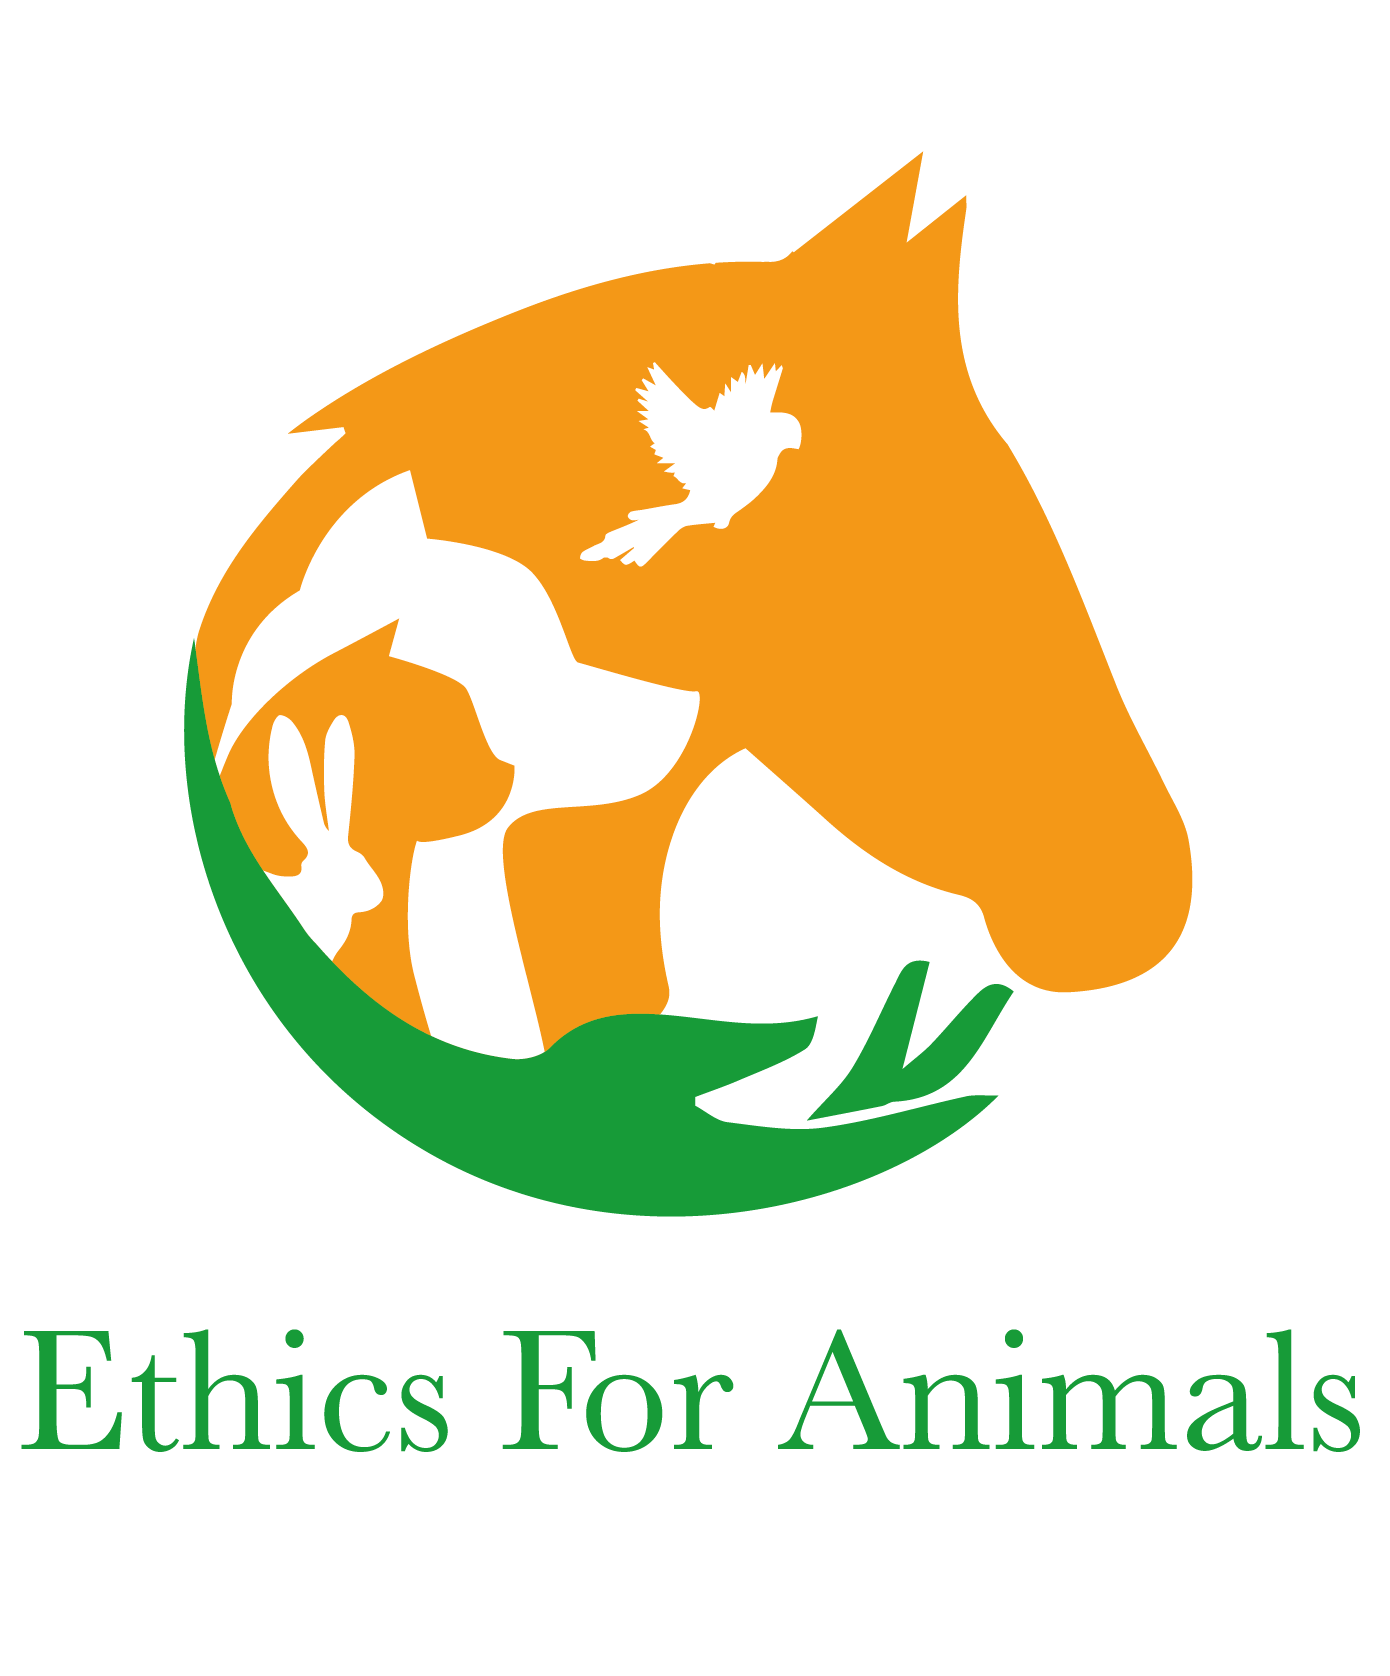 Ethics For Animals